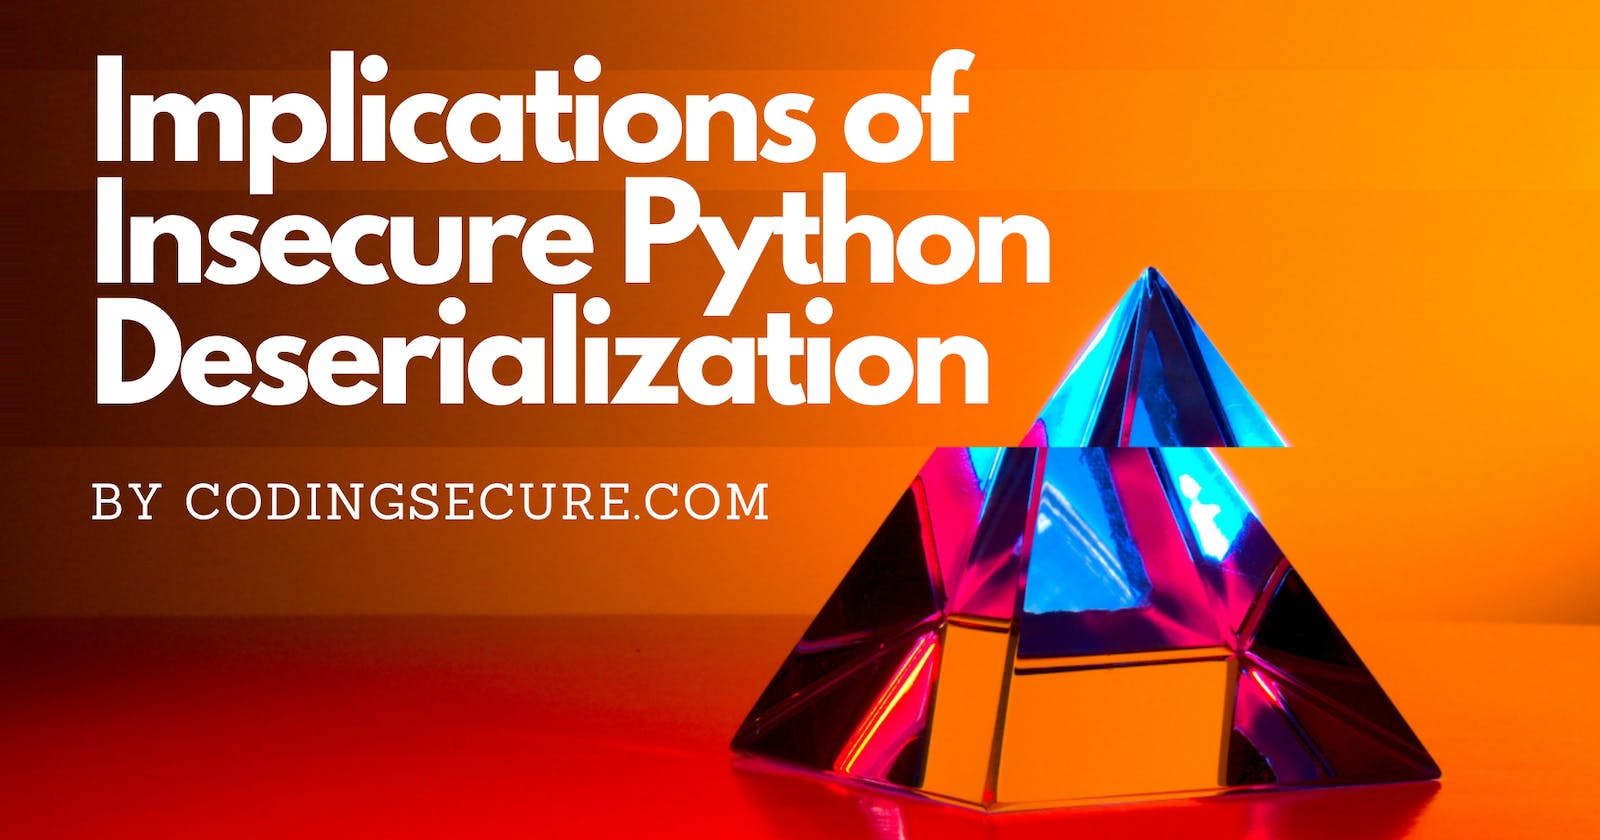 Implications of Insecure Python Deserialization